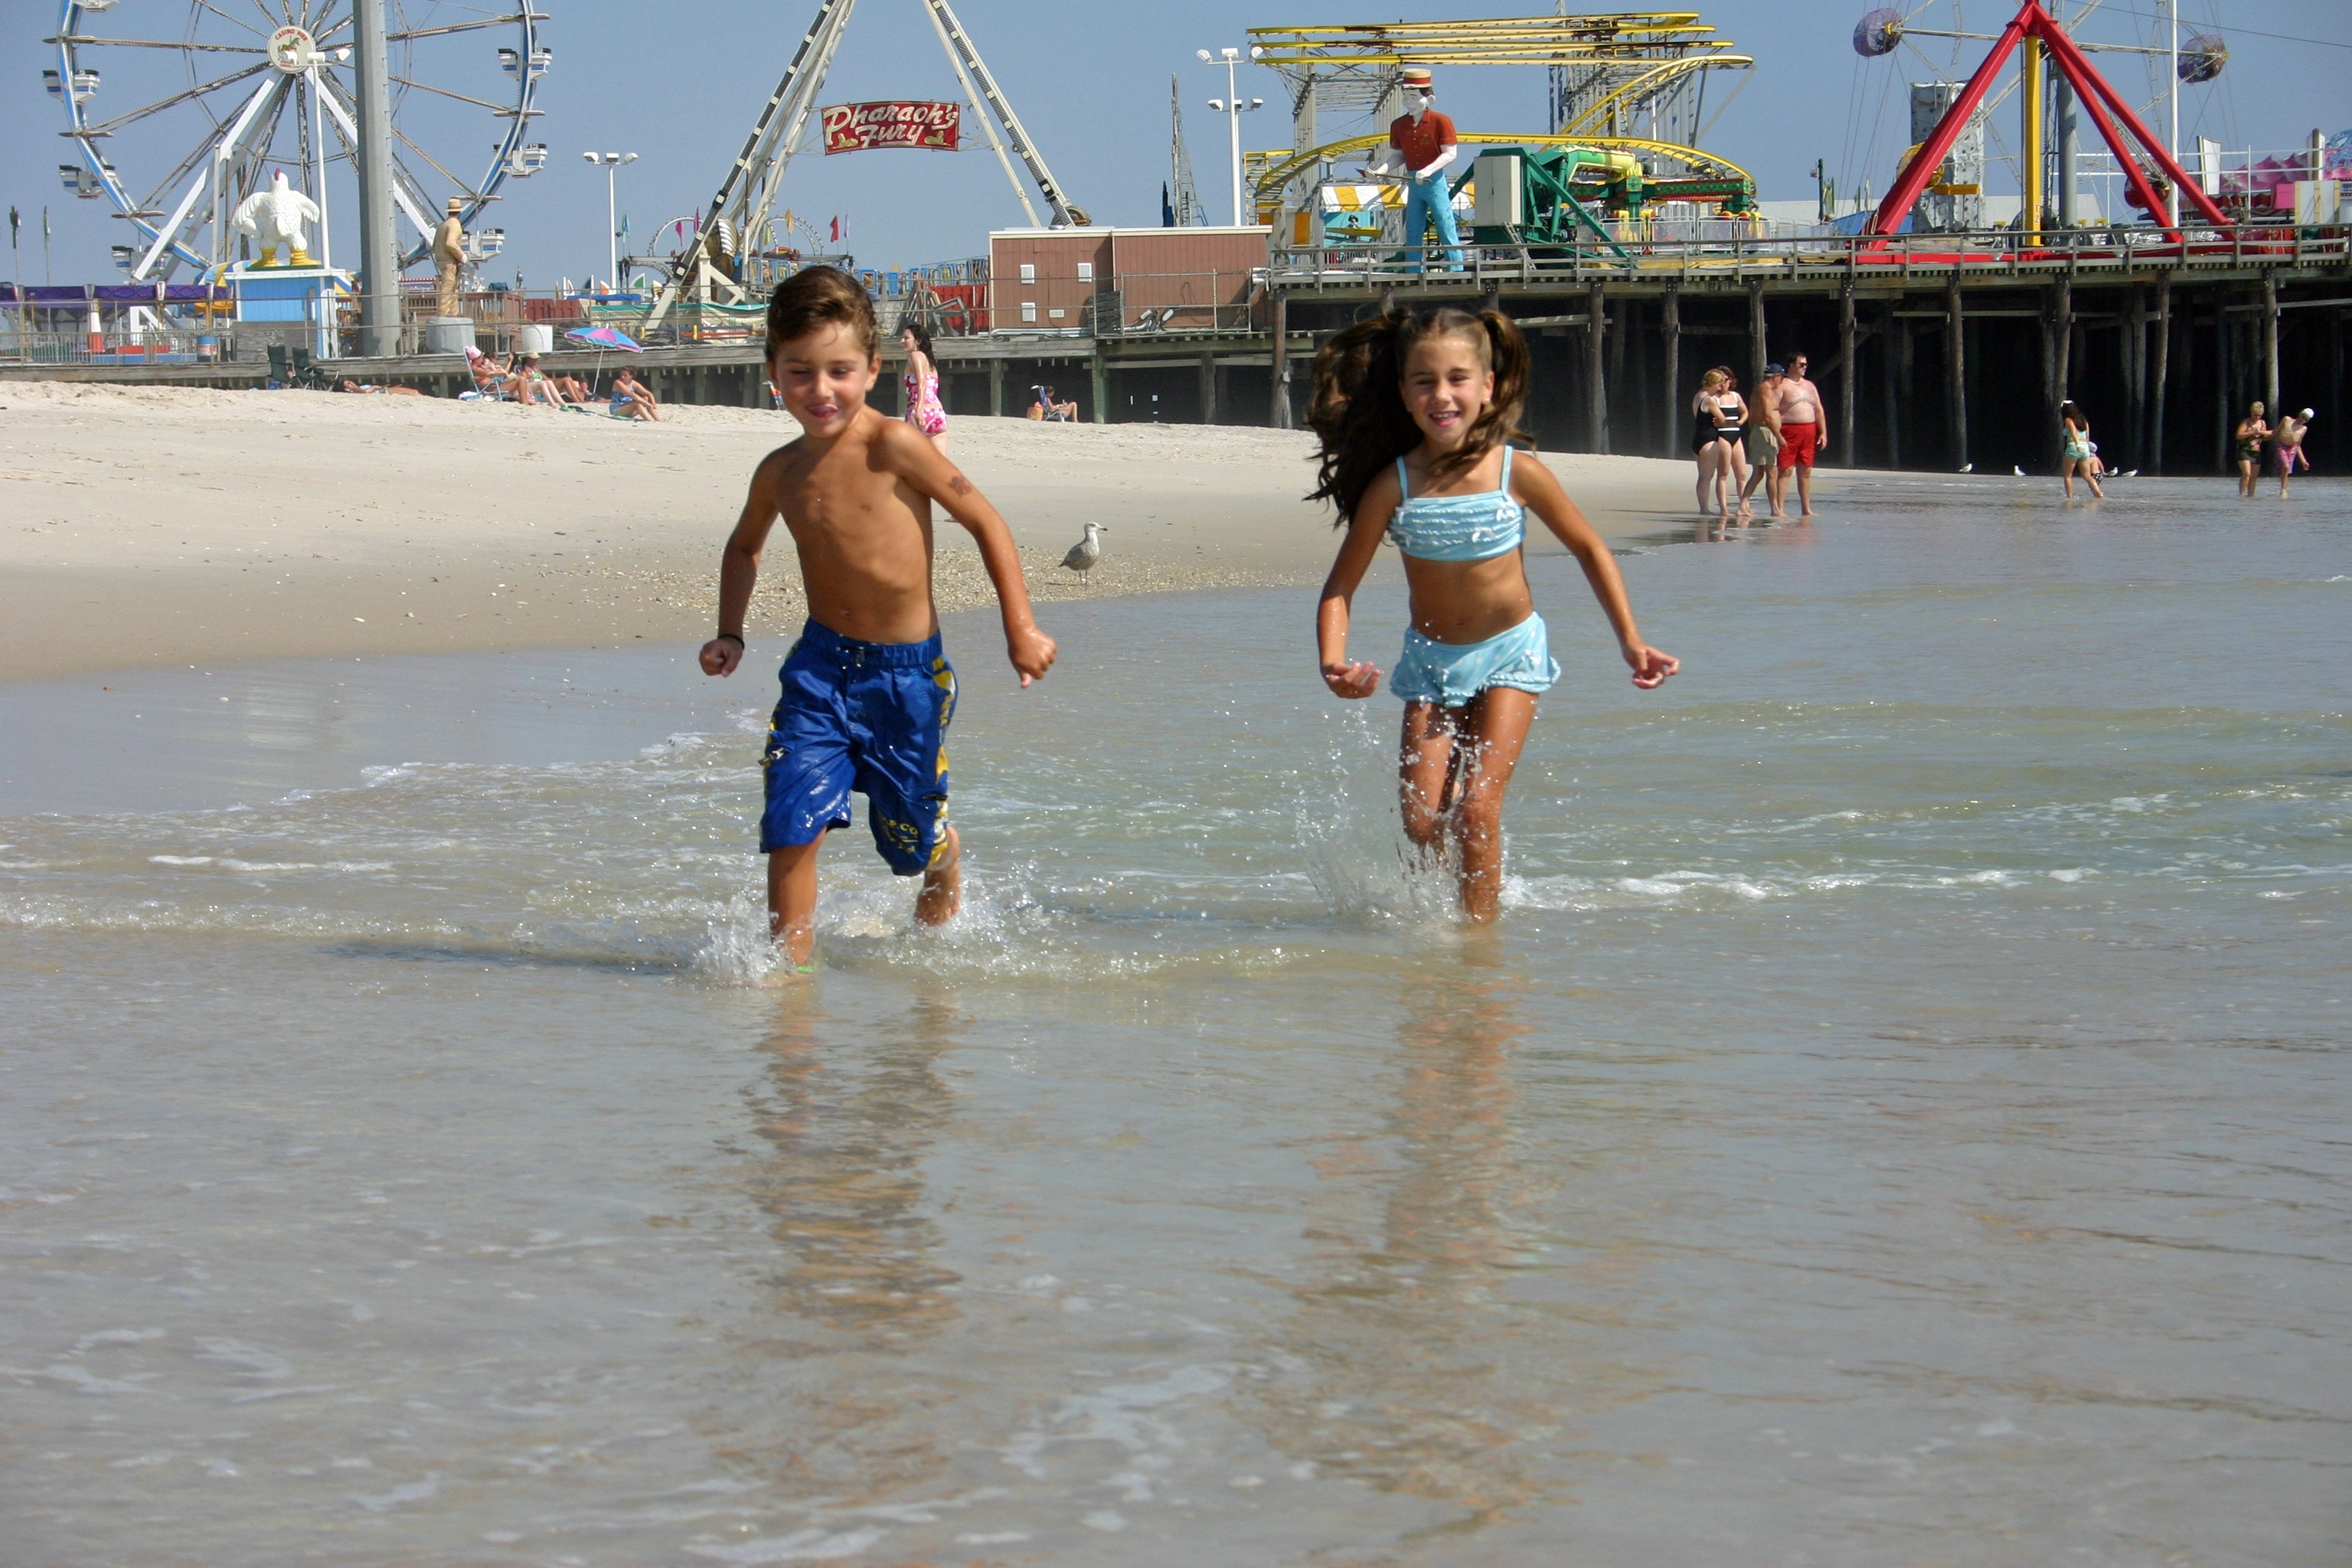 Fun Family Events During Second Season at the Jersey Shore